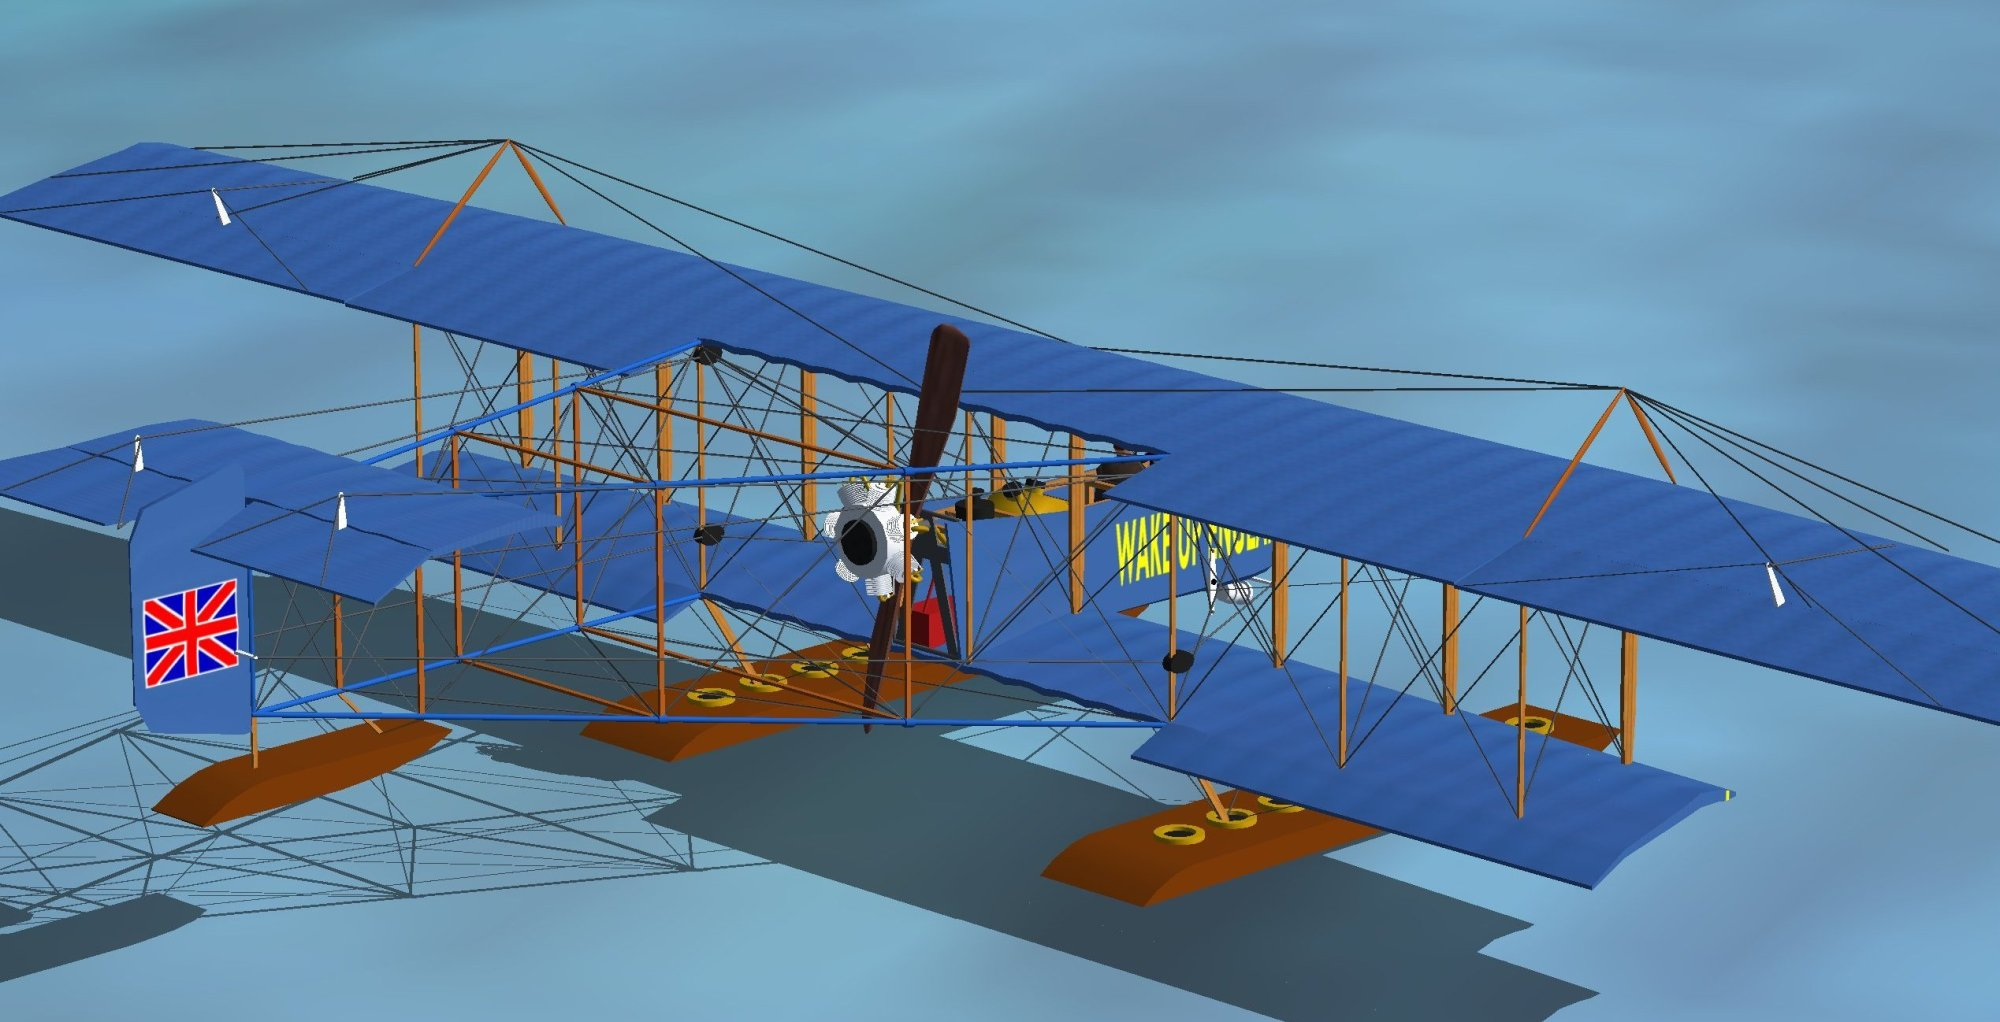 hight resolution of my 1912 wake up england farman model for microsoft flight simulator note the oddity of its prop and rotary engine placement